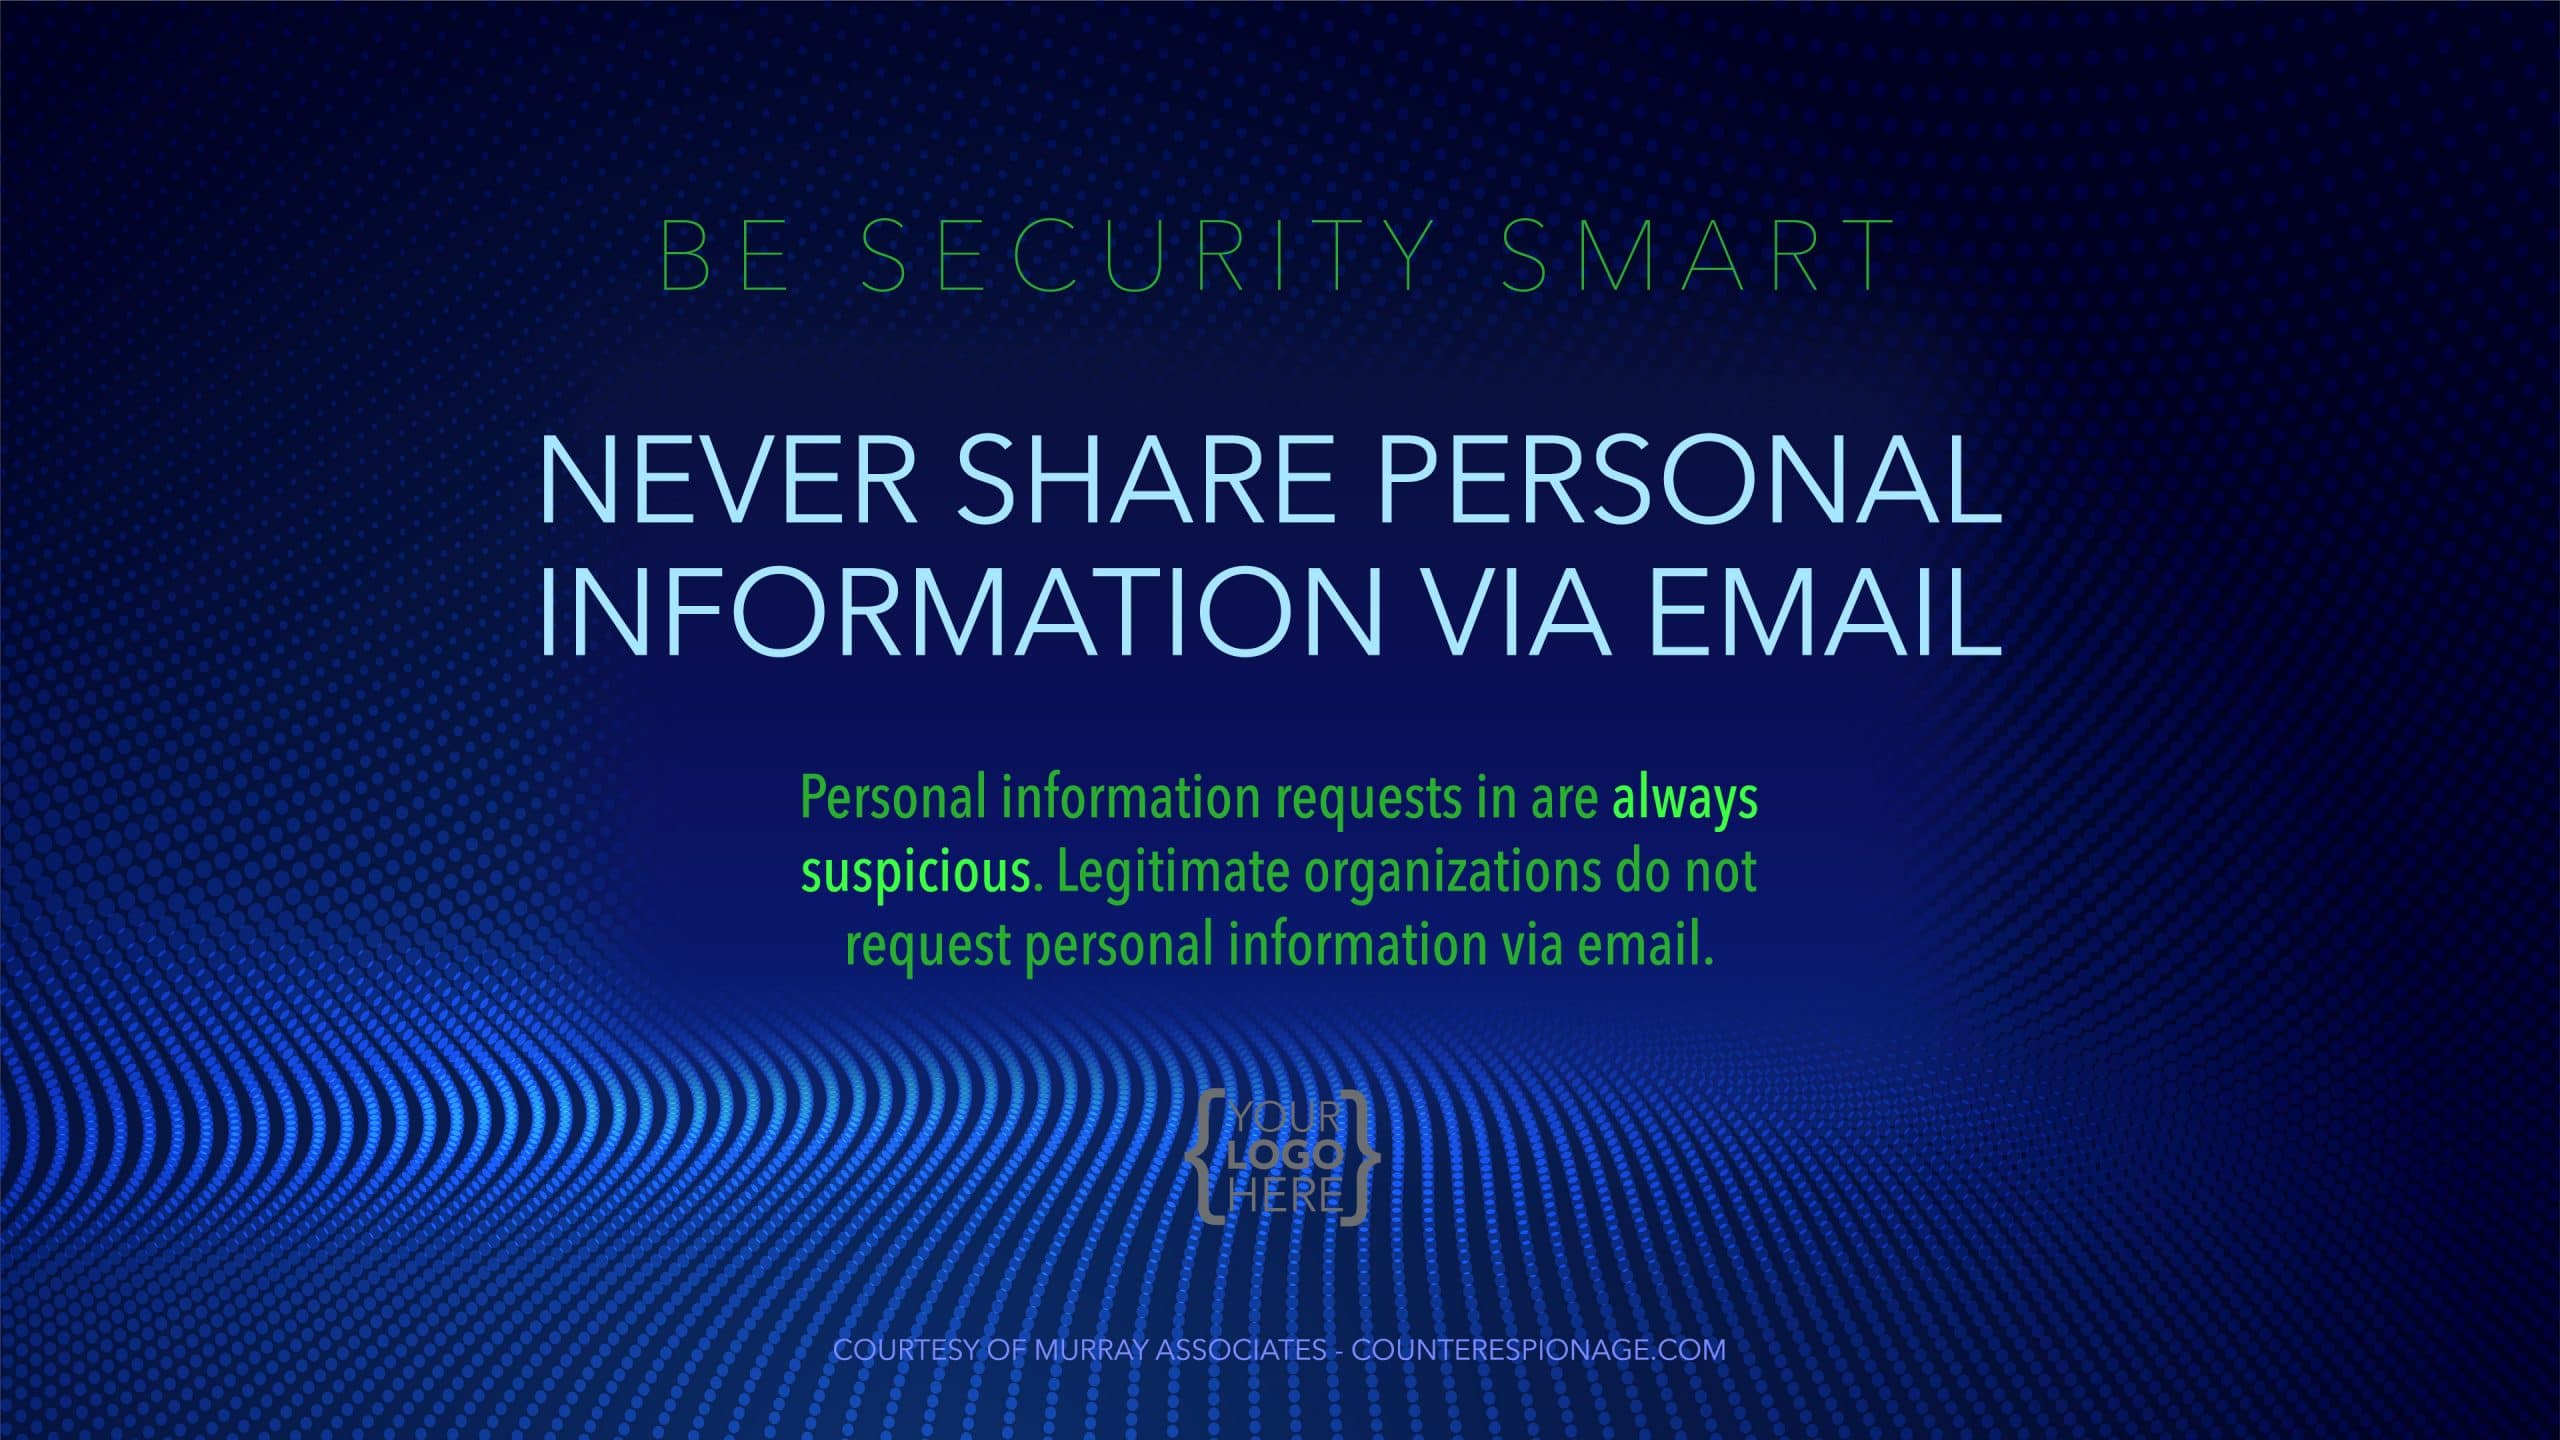 Security Reminder Screen Saver 1 - Never Share